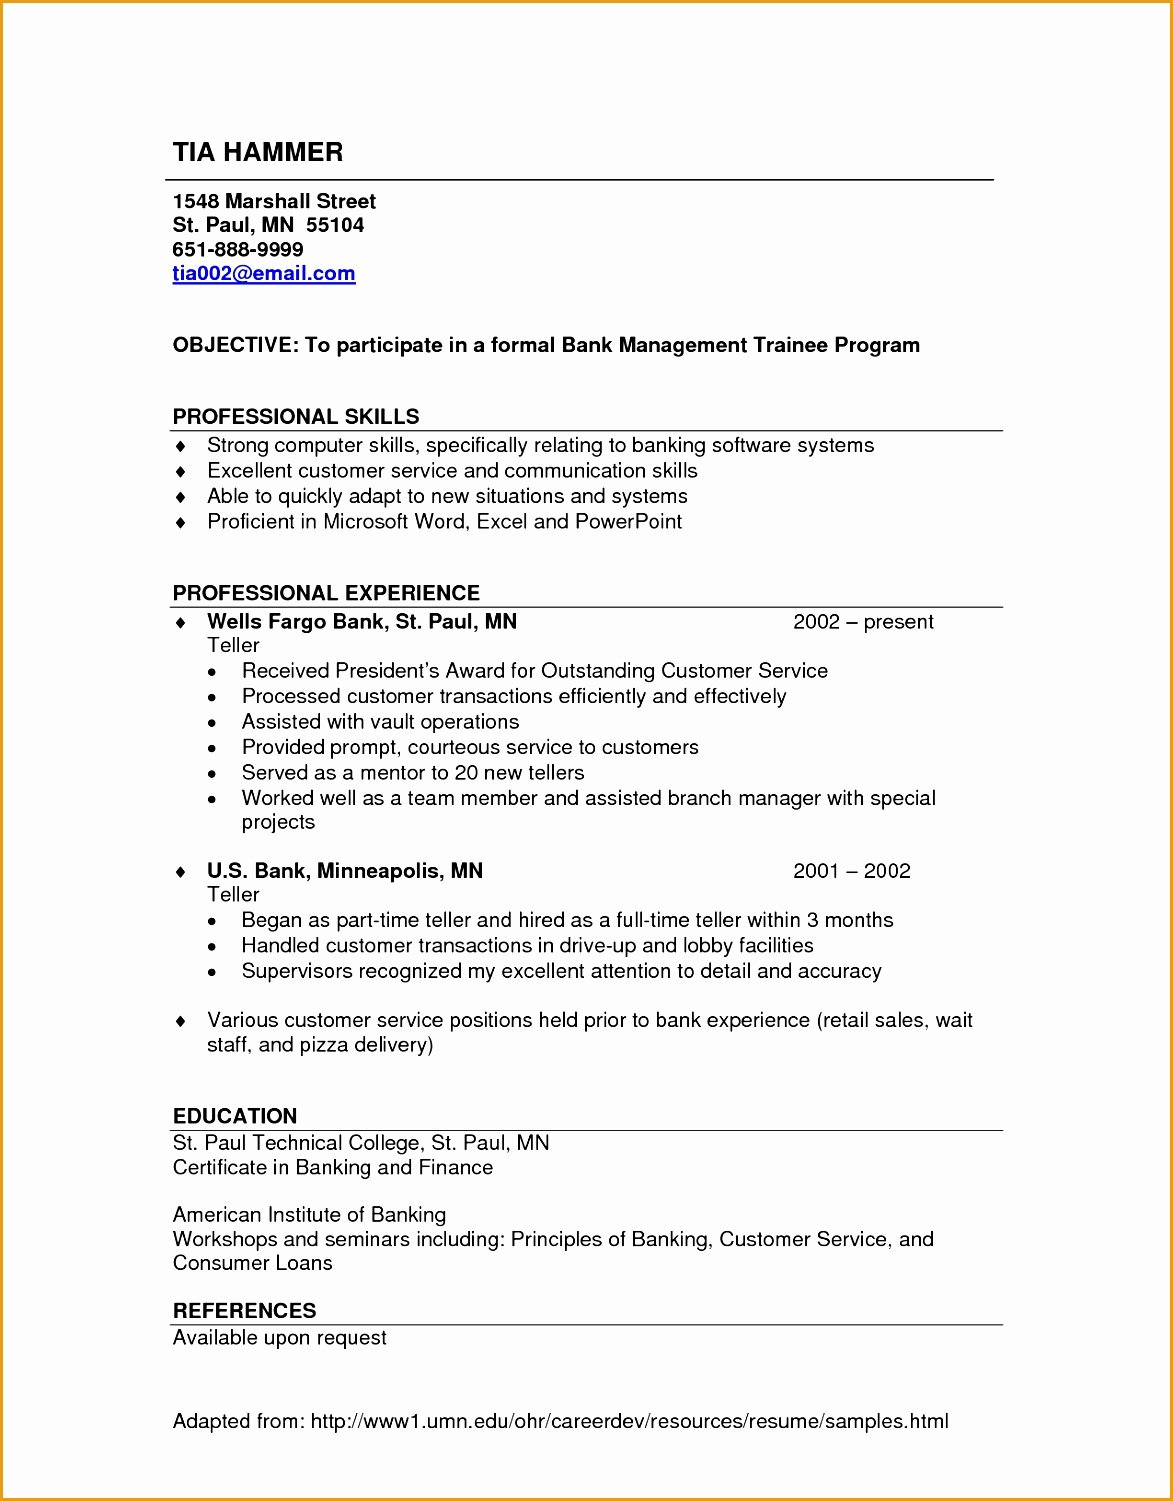 8 Simple Resume with No Experience Free Samples